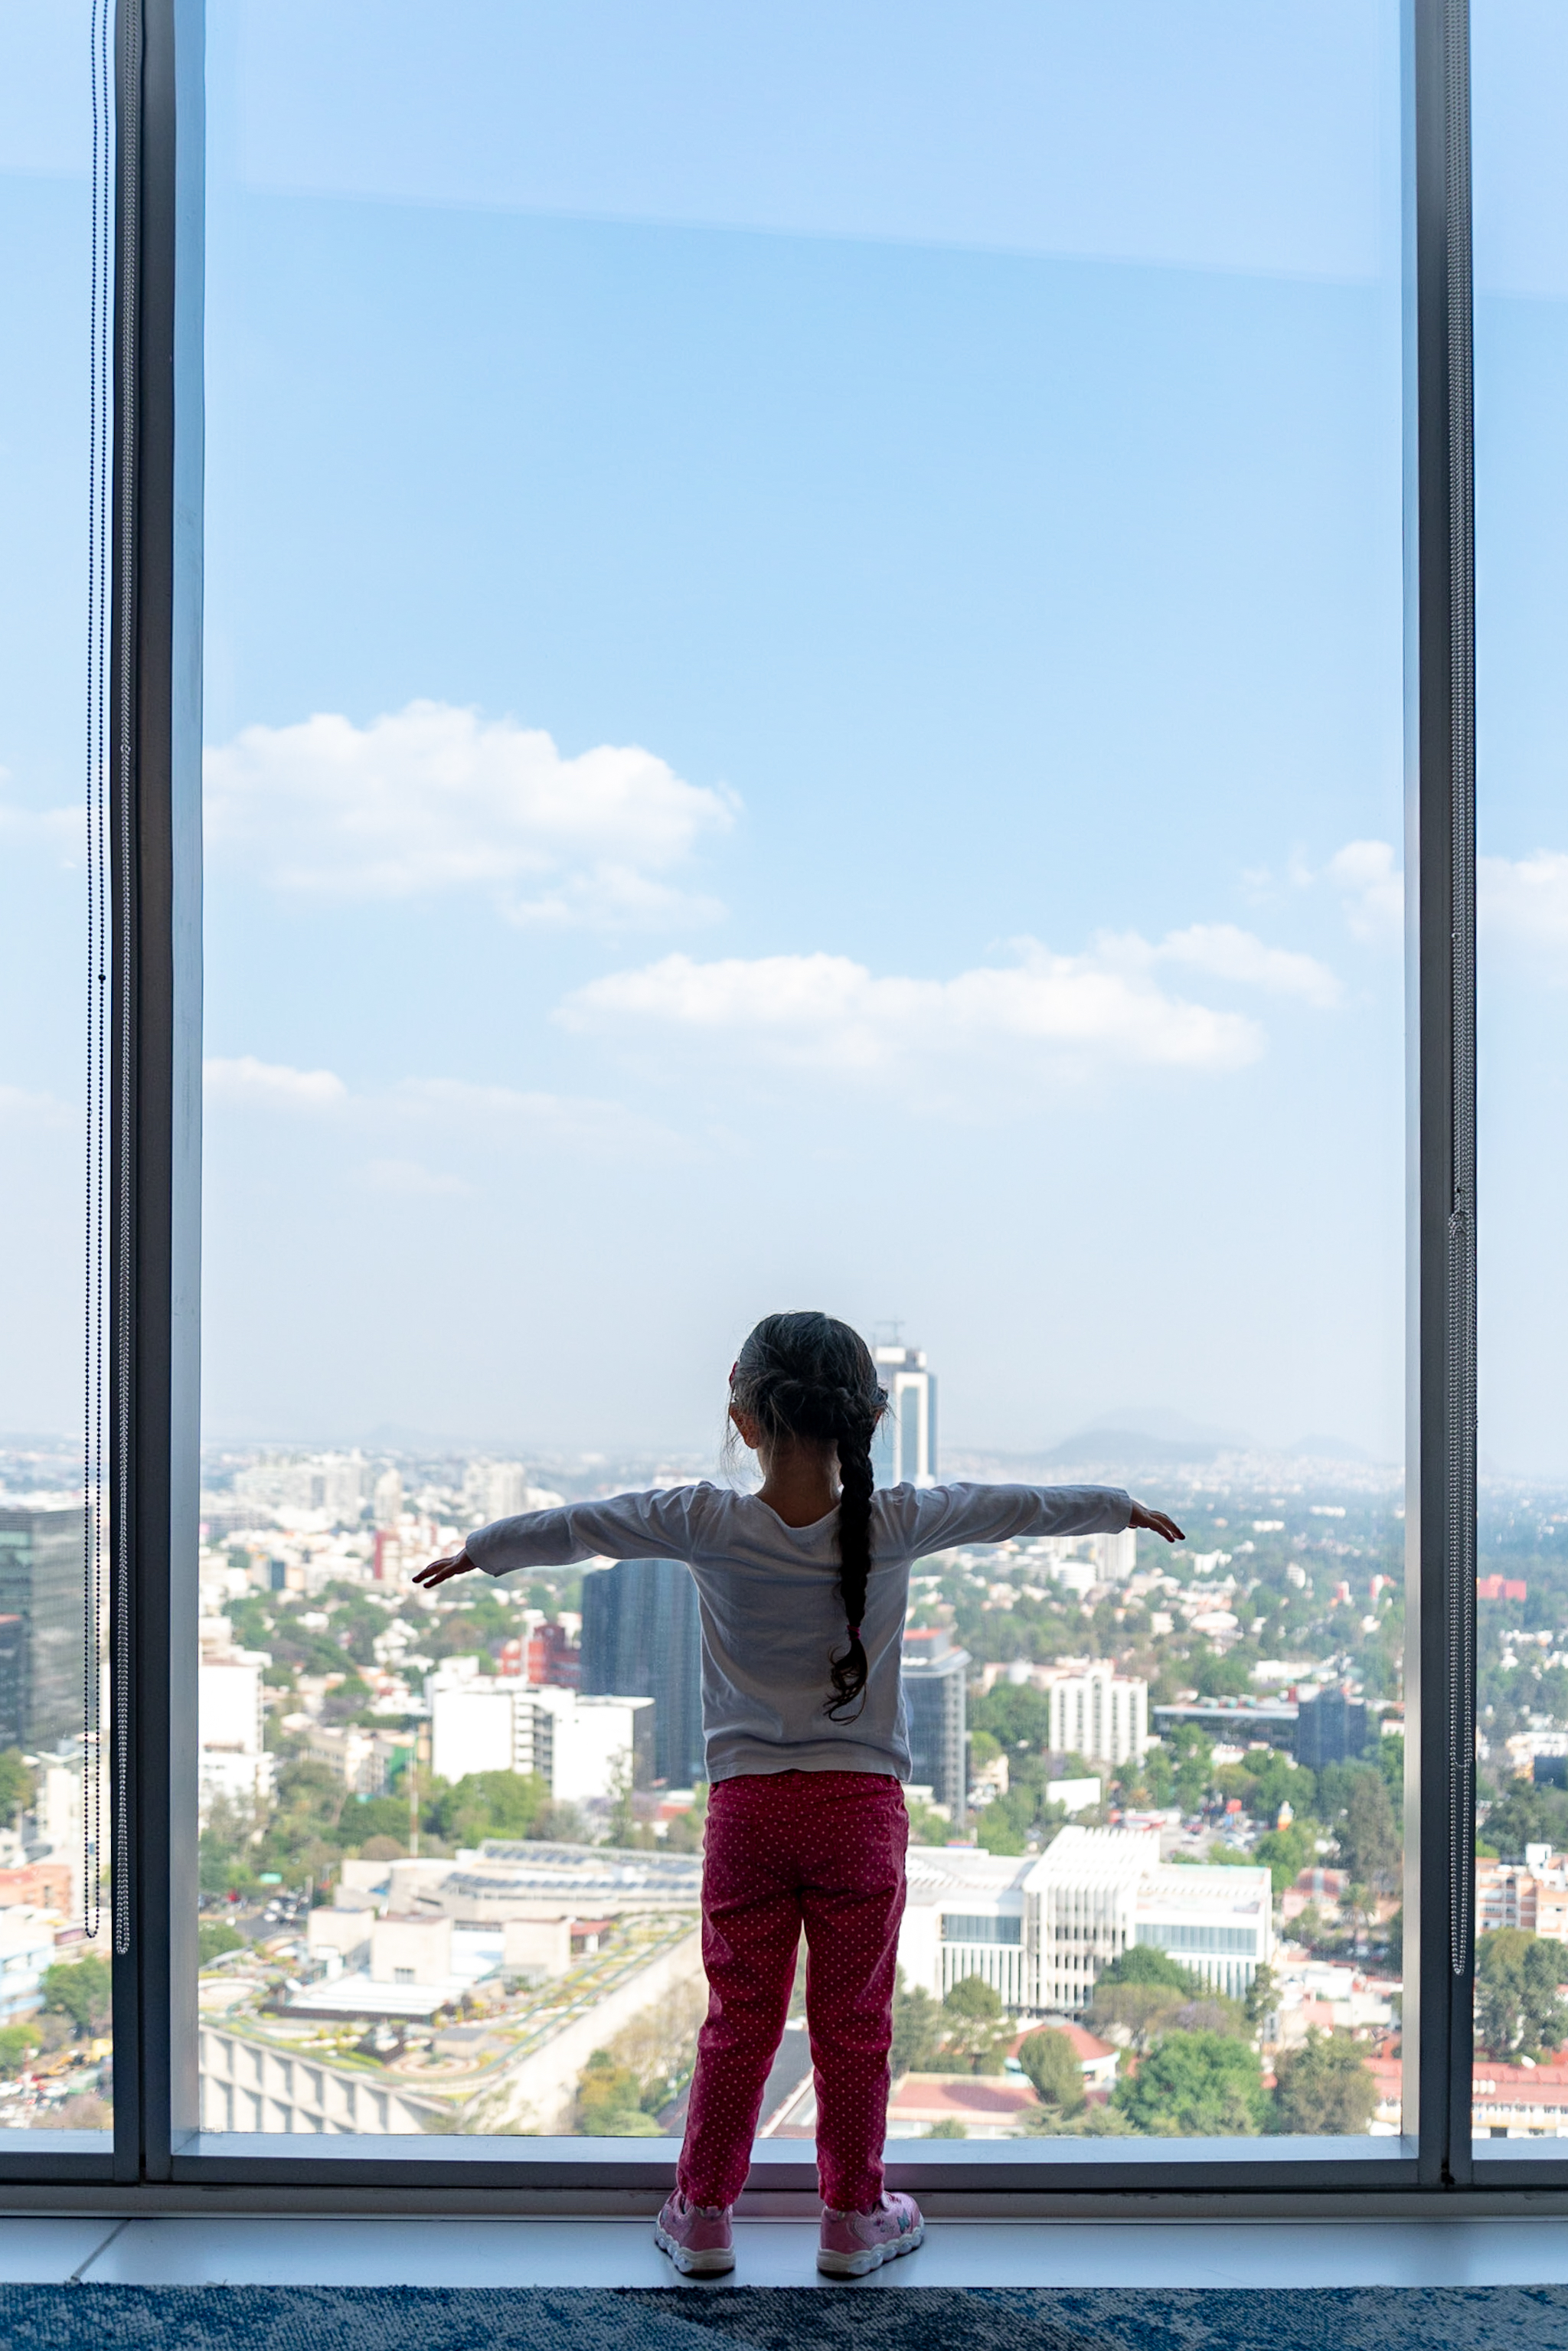 Javier's daughter looking out windown overlooking Mexico City.